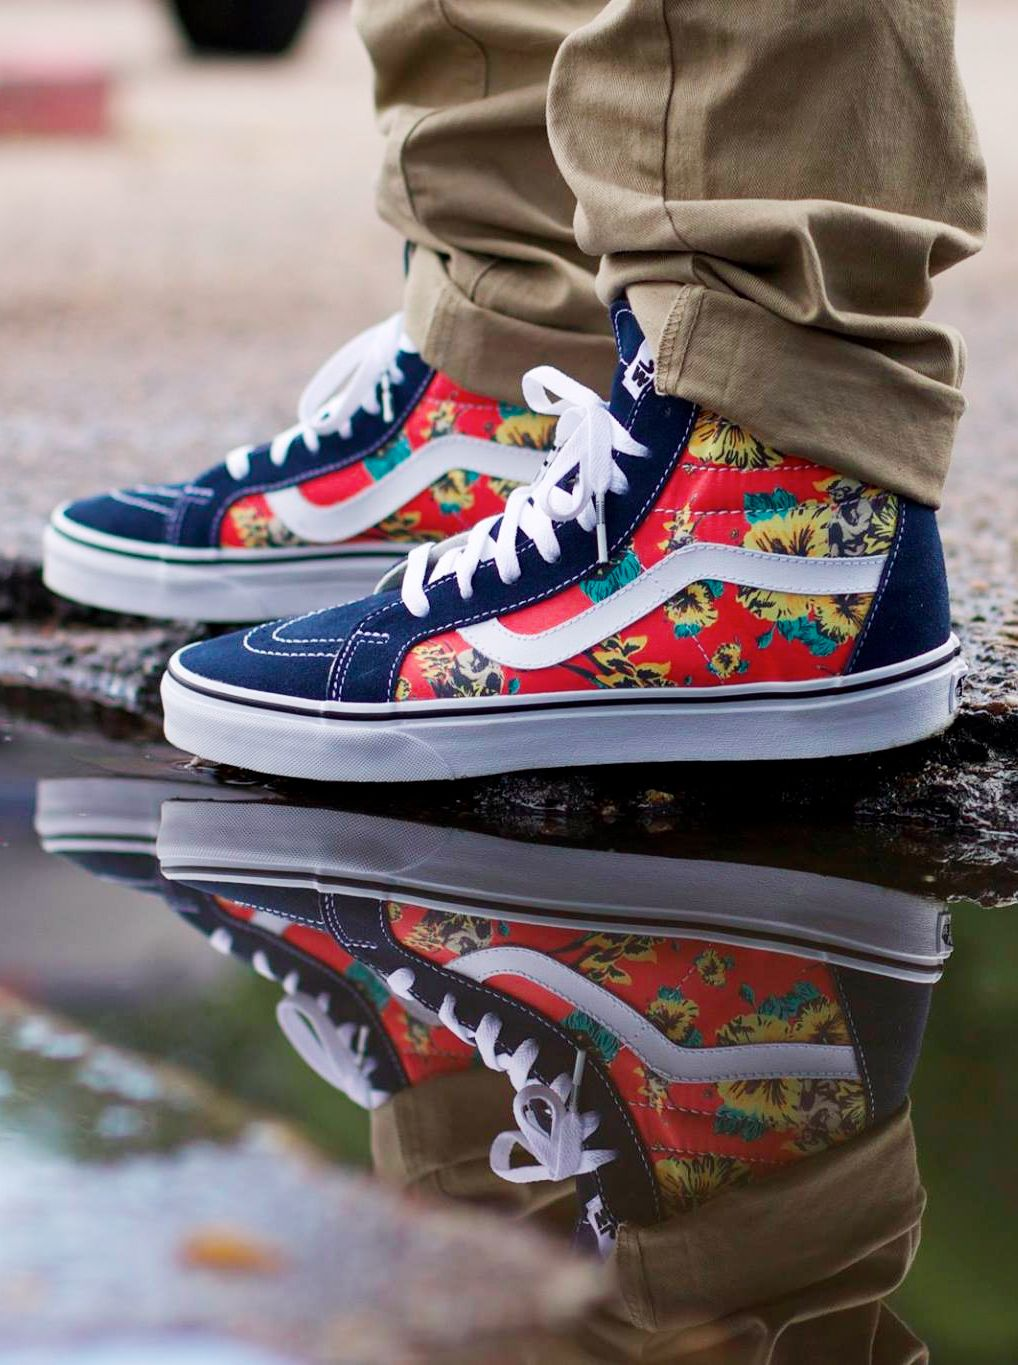 1ac59e9448 Star Wars x Vans Sk8-Hi Reissue  Yoda Aloha   karmaloop has some of the  collection - Rep code